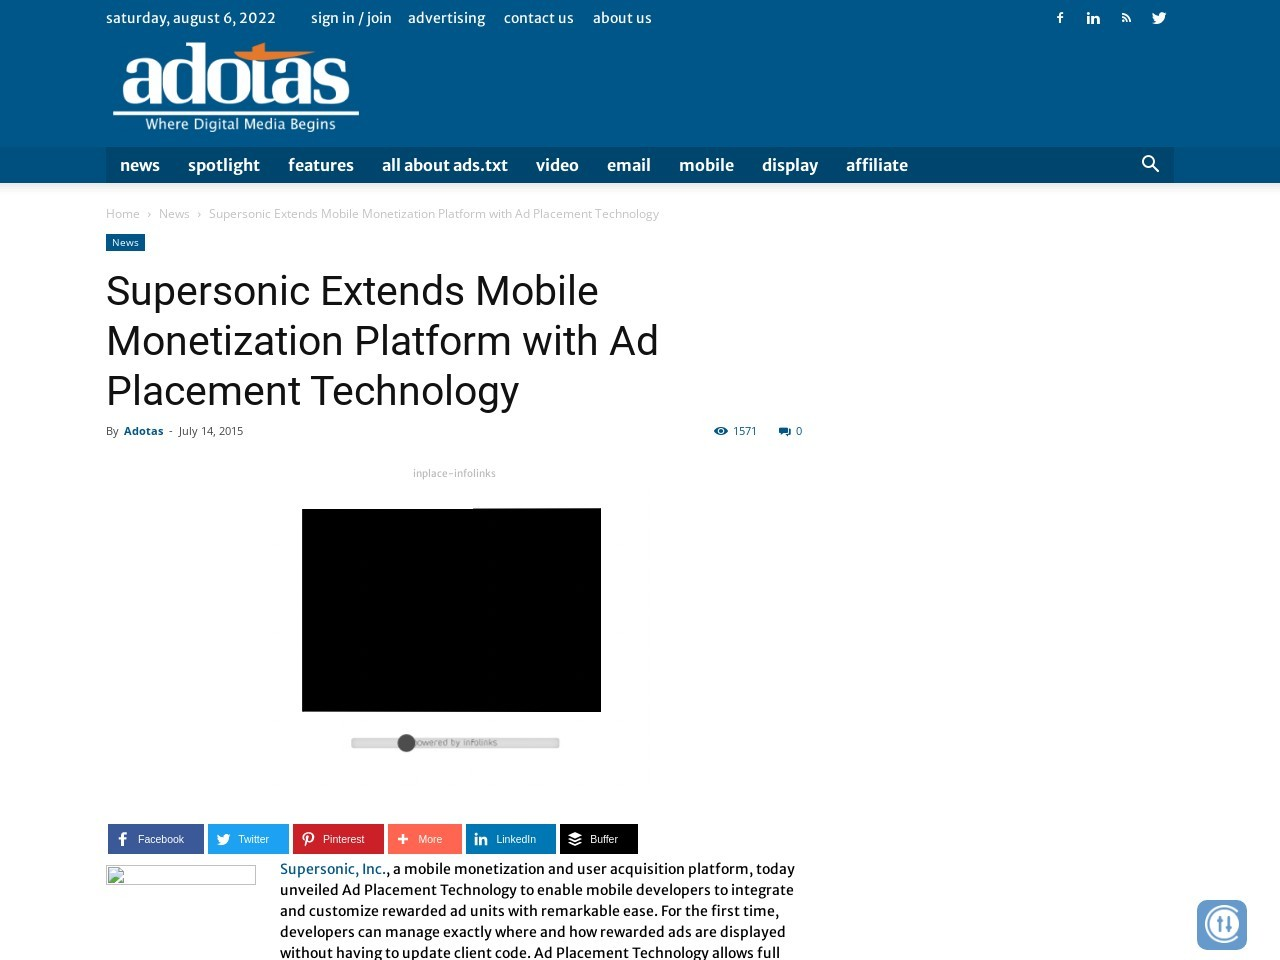 Supersonic Extends Mobile Monetization Platform with Ad Placement Technology